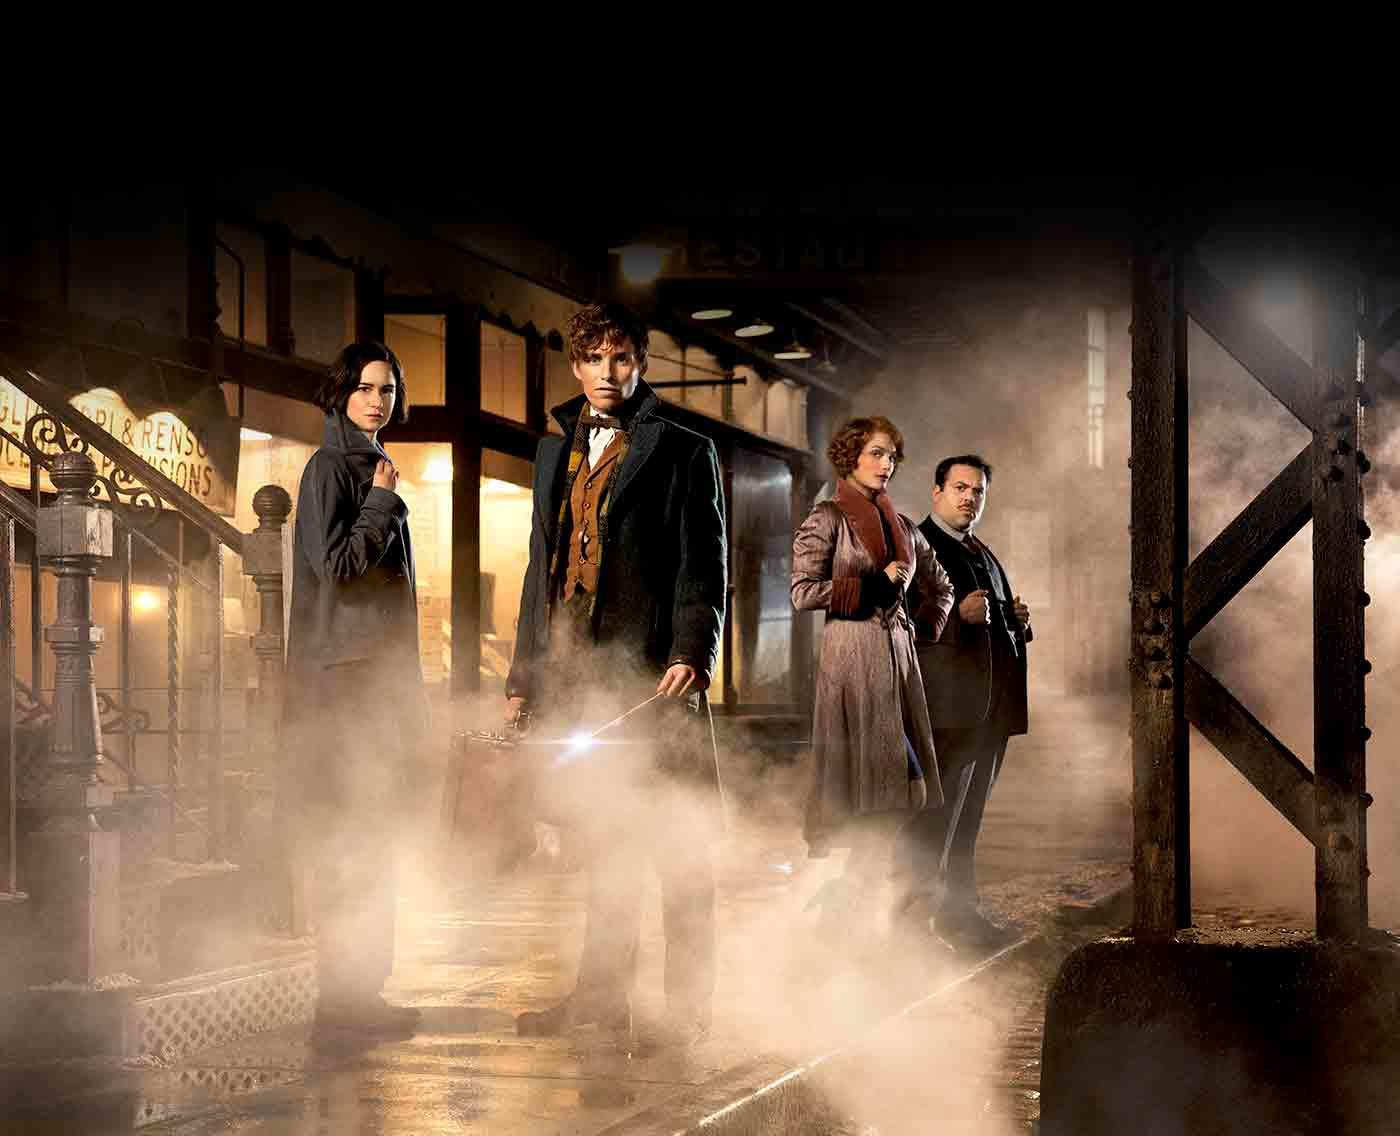 Check out the movie photos of 'Fantastic Beasts and Where to Find Them'